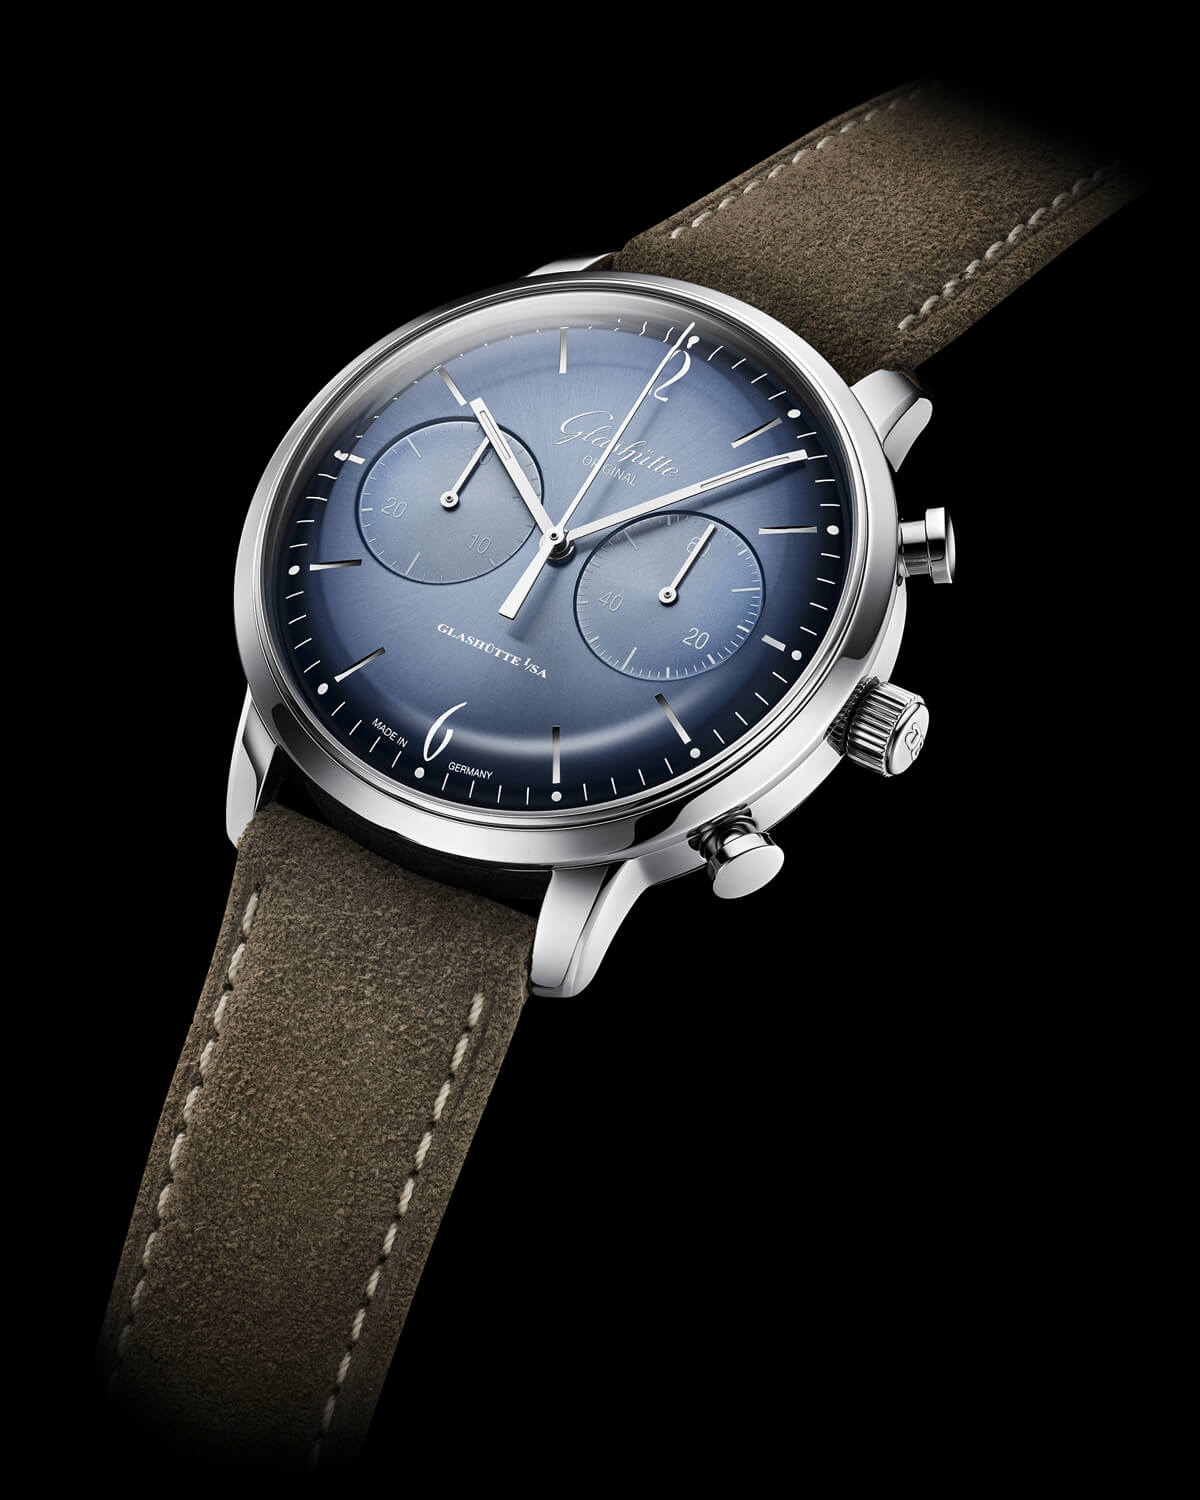 Glashütte Original Sixties Annual Edition 2020 Ref. 1-39-52-14-02-04